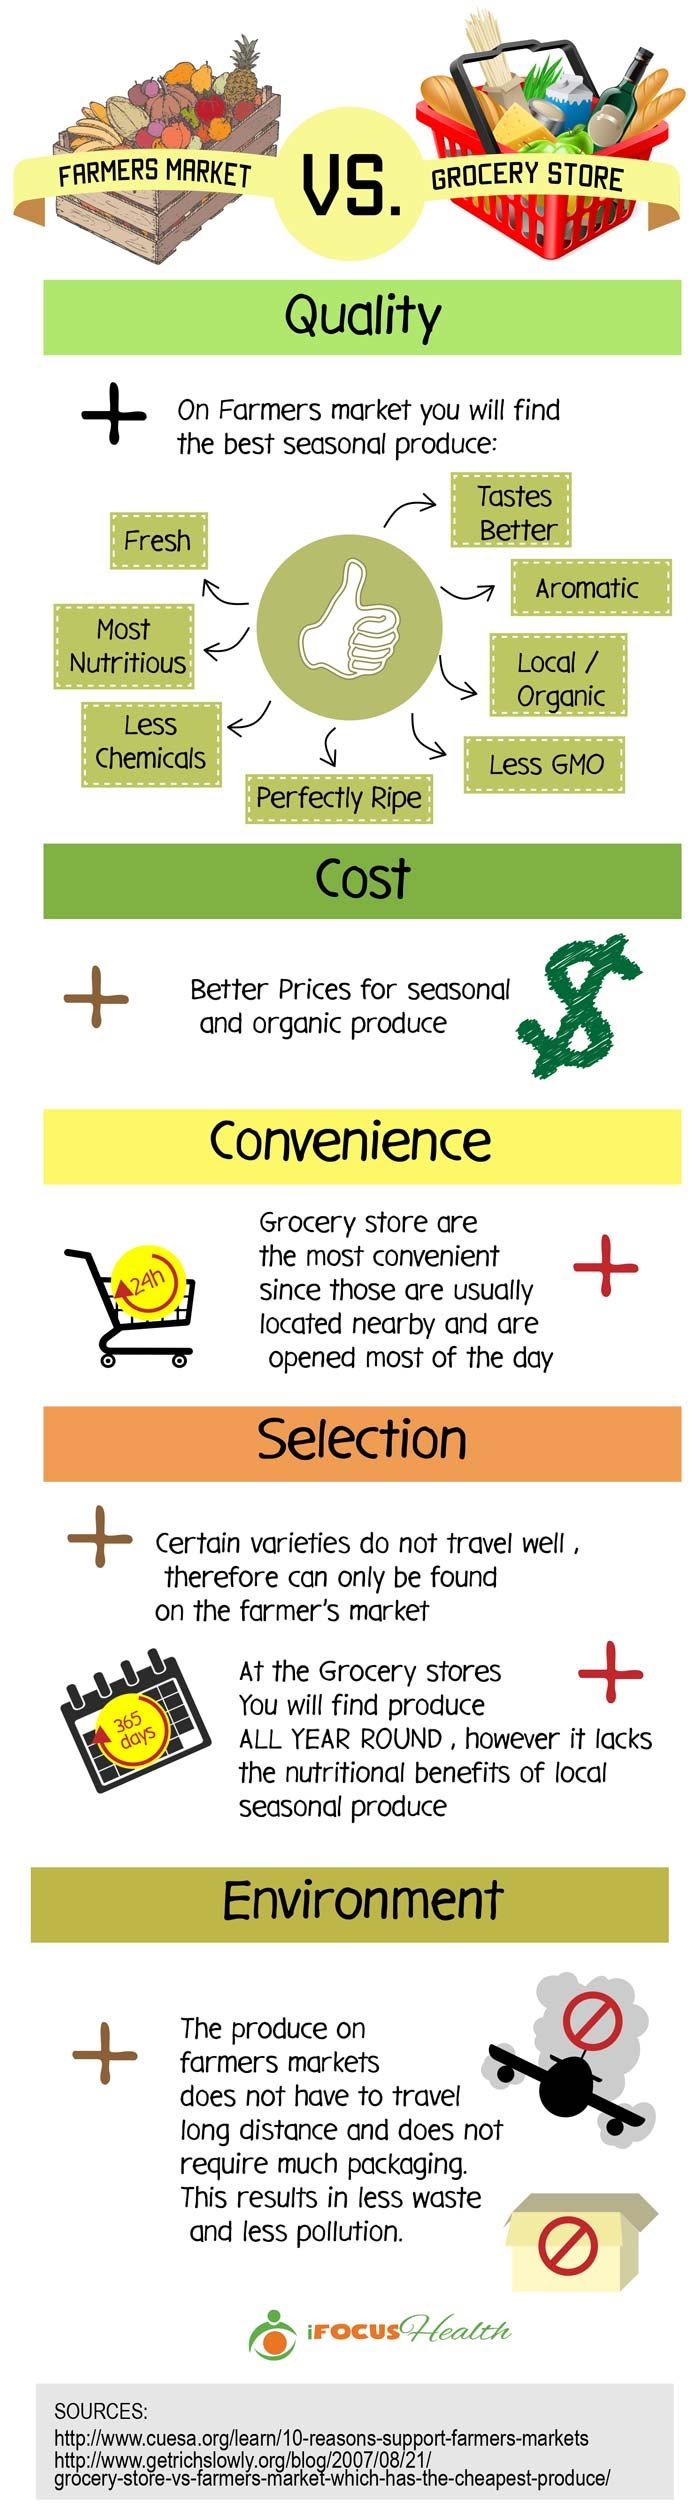 Farmers Market Vs Grocery Store #Infographic